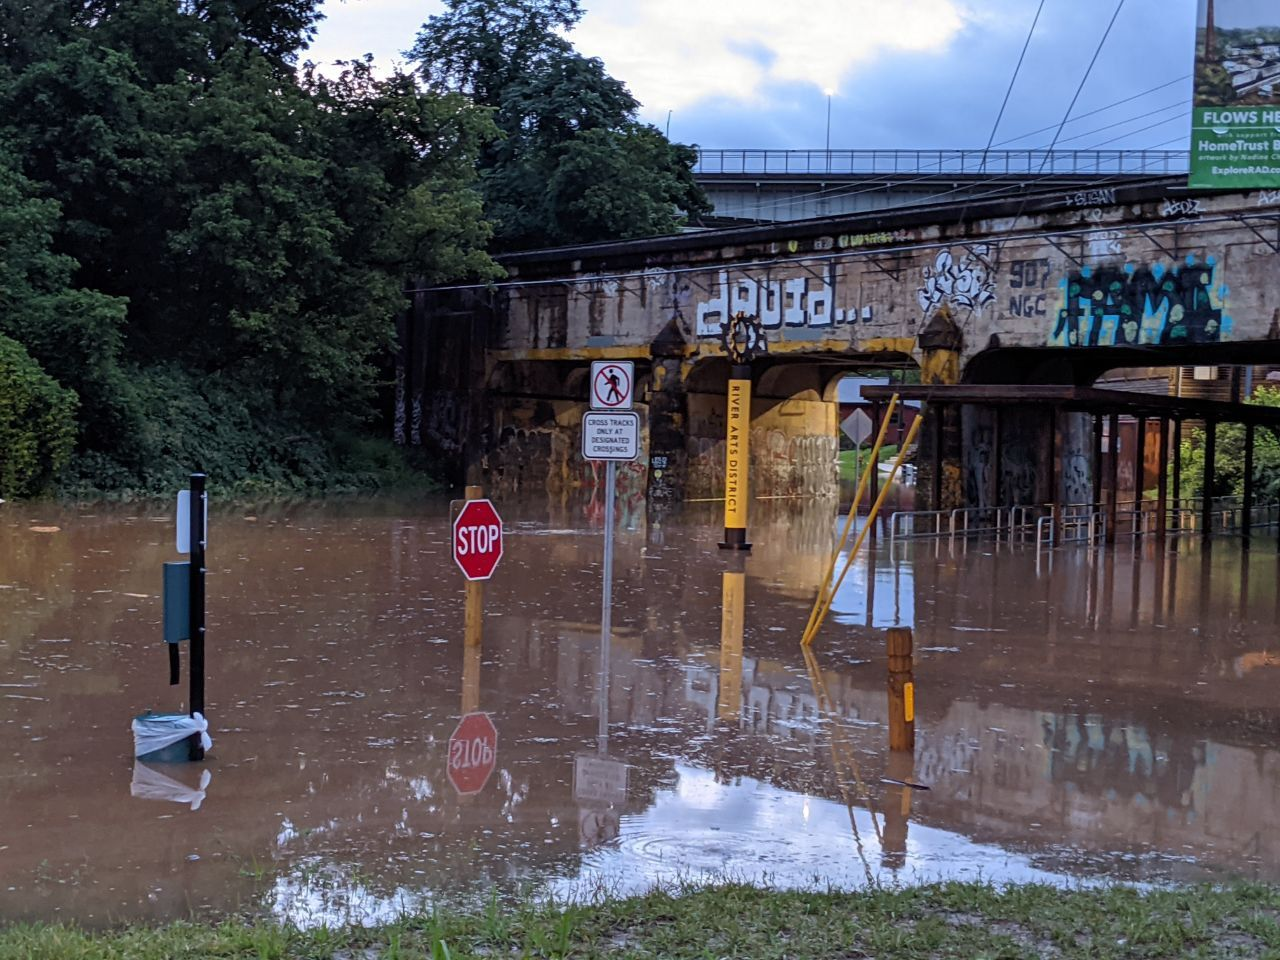 """Flooded street with railroad bridge over top. Stop sign and public trashcan peek over top of the water. Bridge has a sign that reads """"River Arts District"""""""